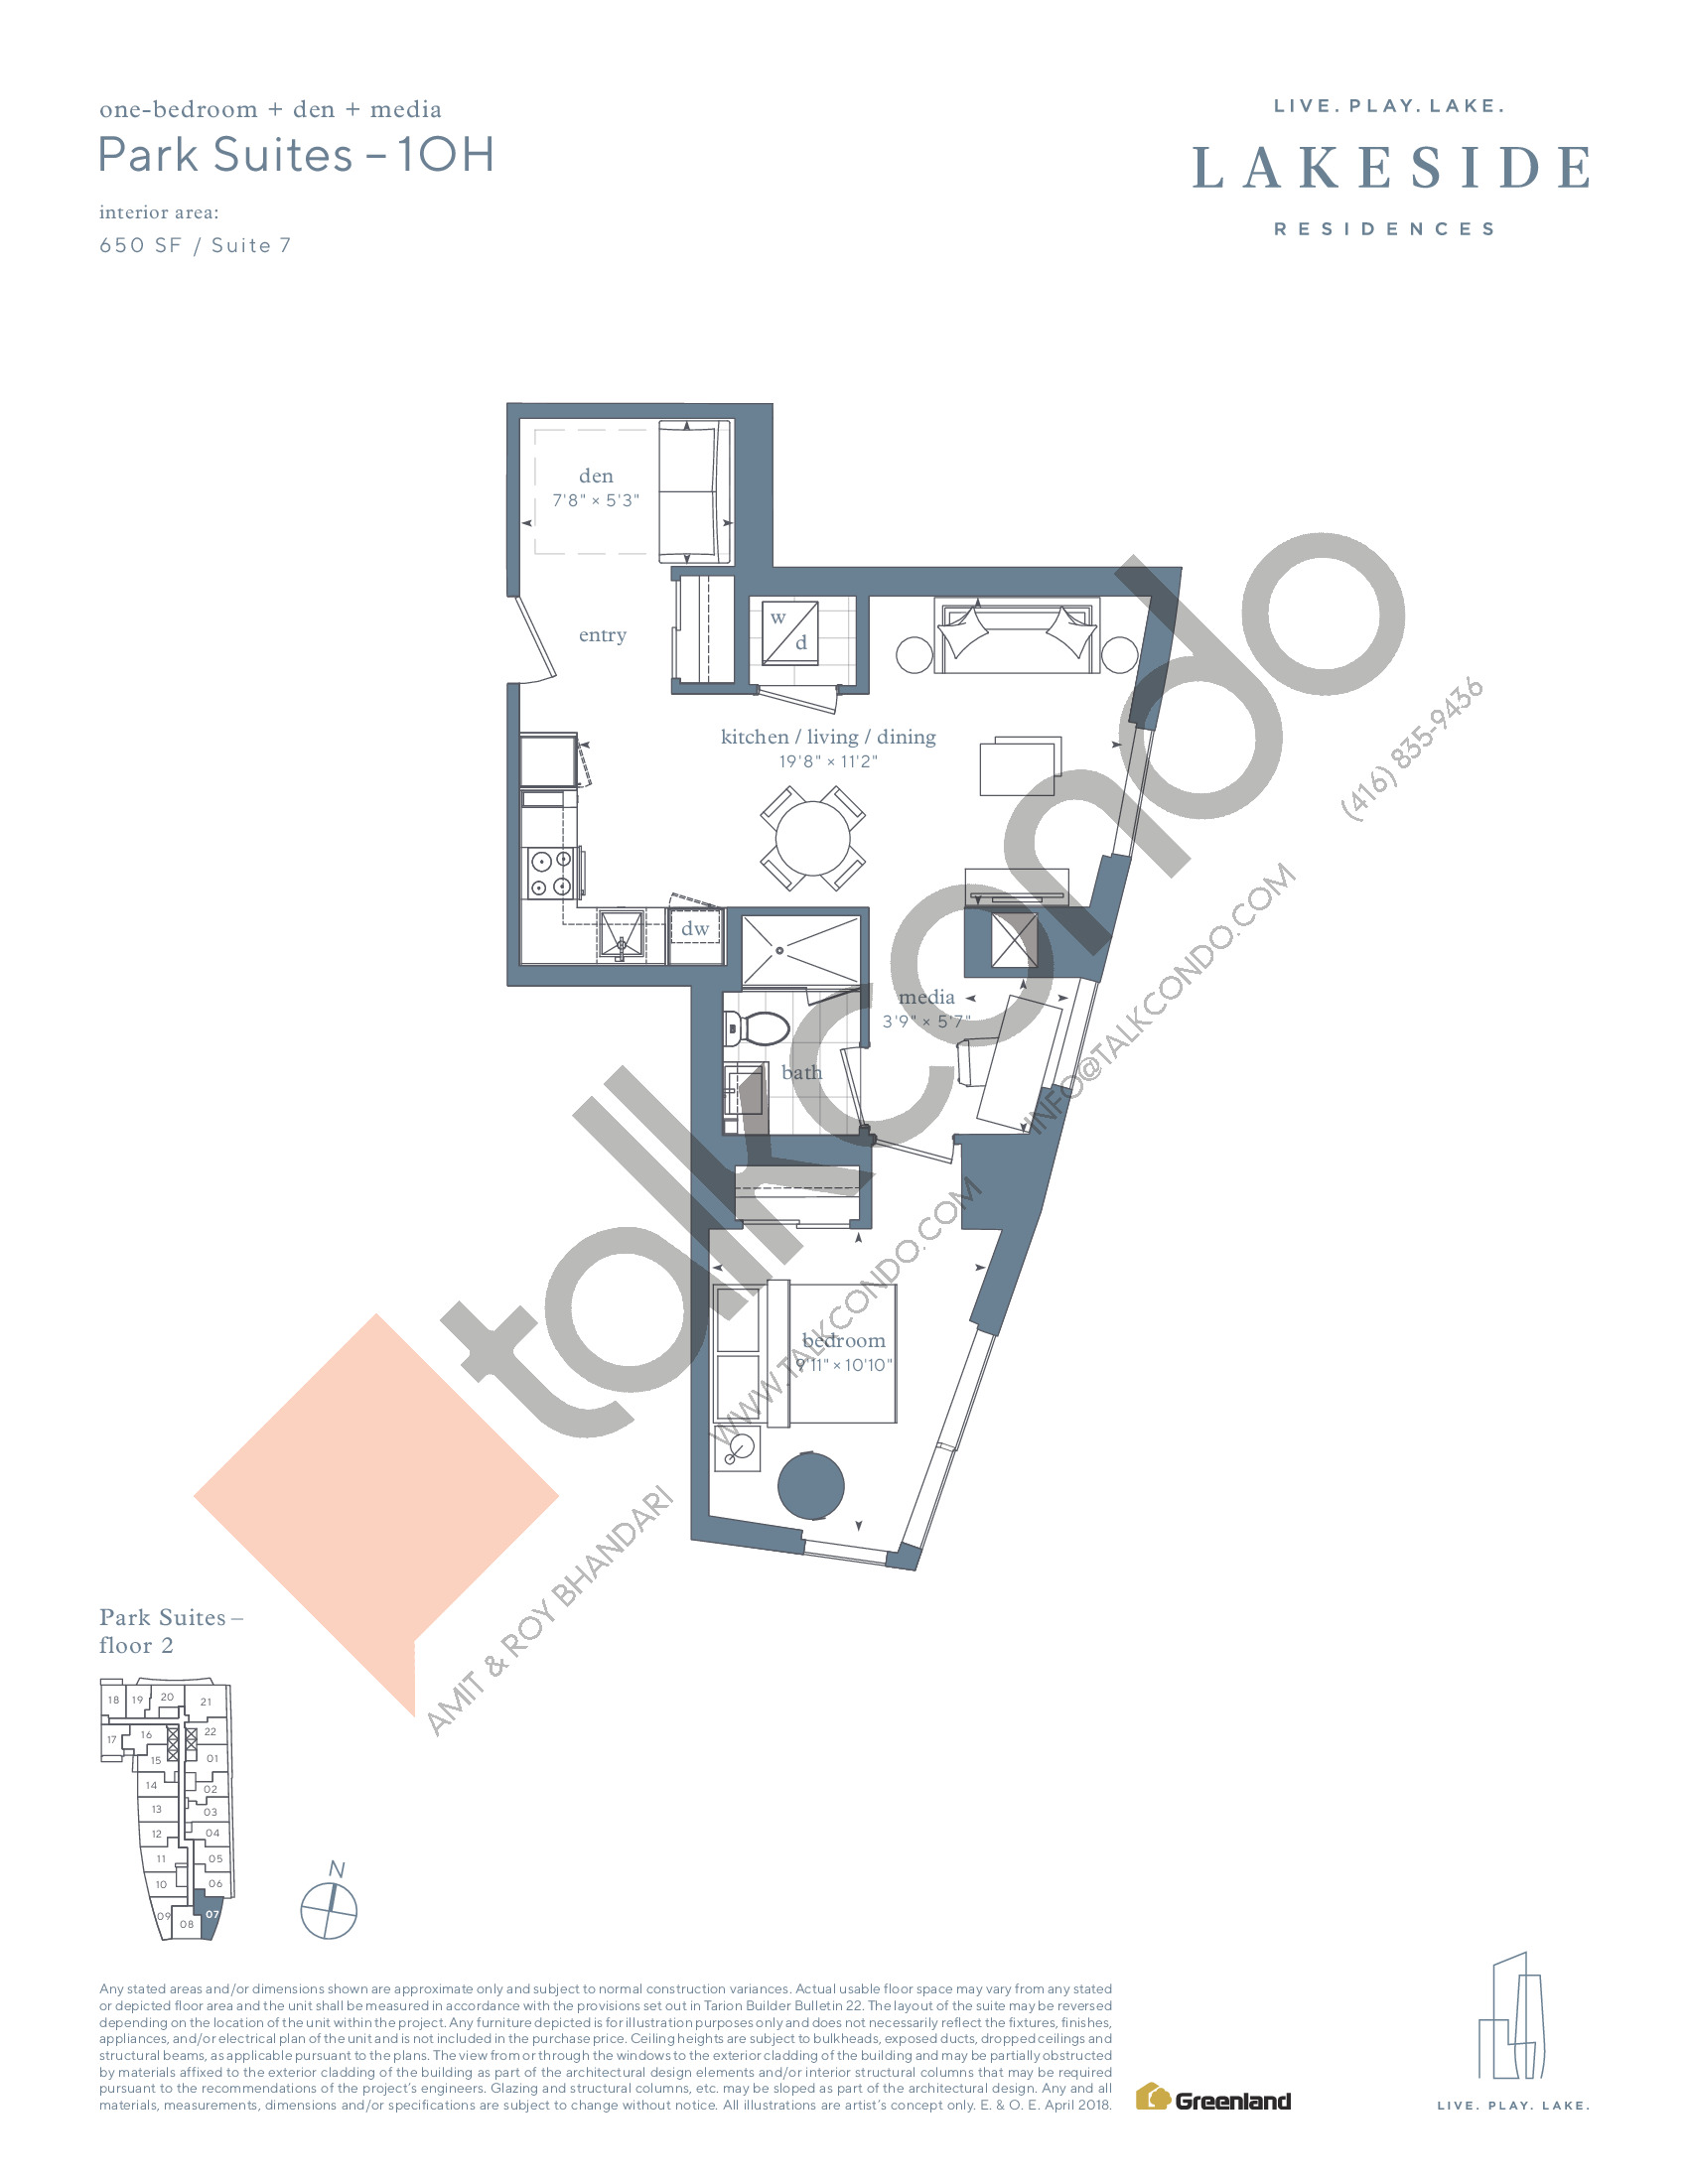 Park Suites - 1OH Floor Plan at Lakeside Residences - 650 sq.ft